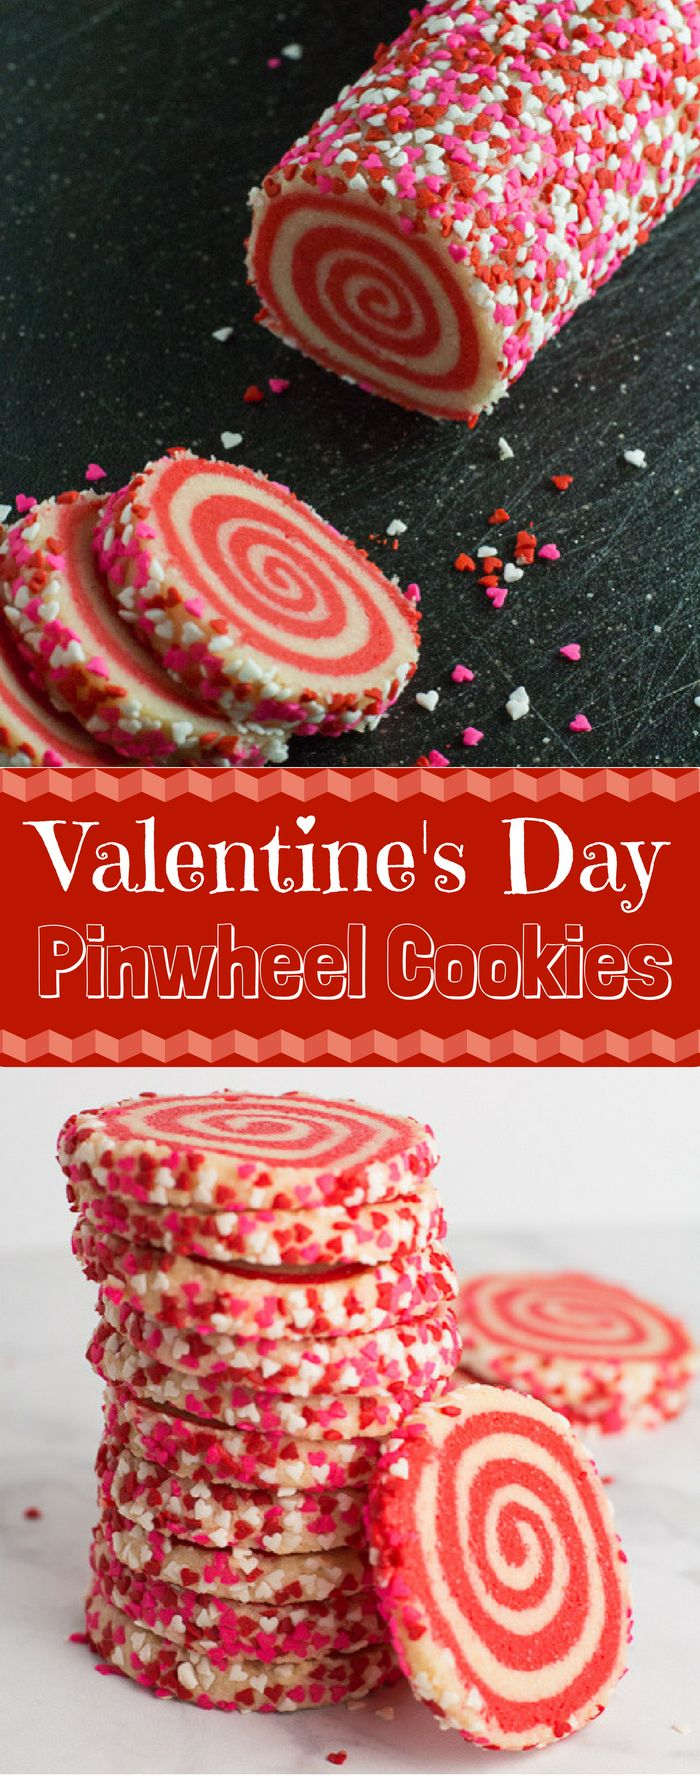 These whimsical pinwheel cookies are perfect for Valentine's Day! The best part? You can adapt this to any occasion and holiday!